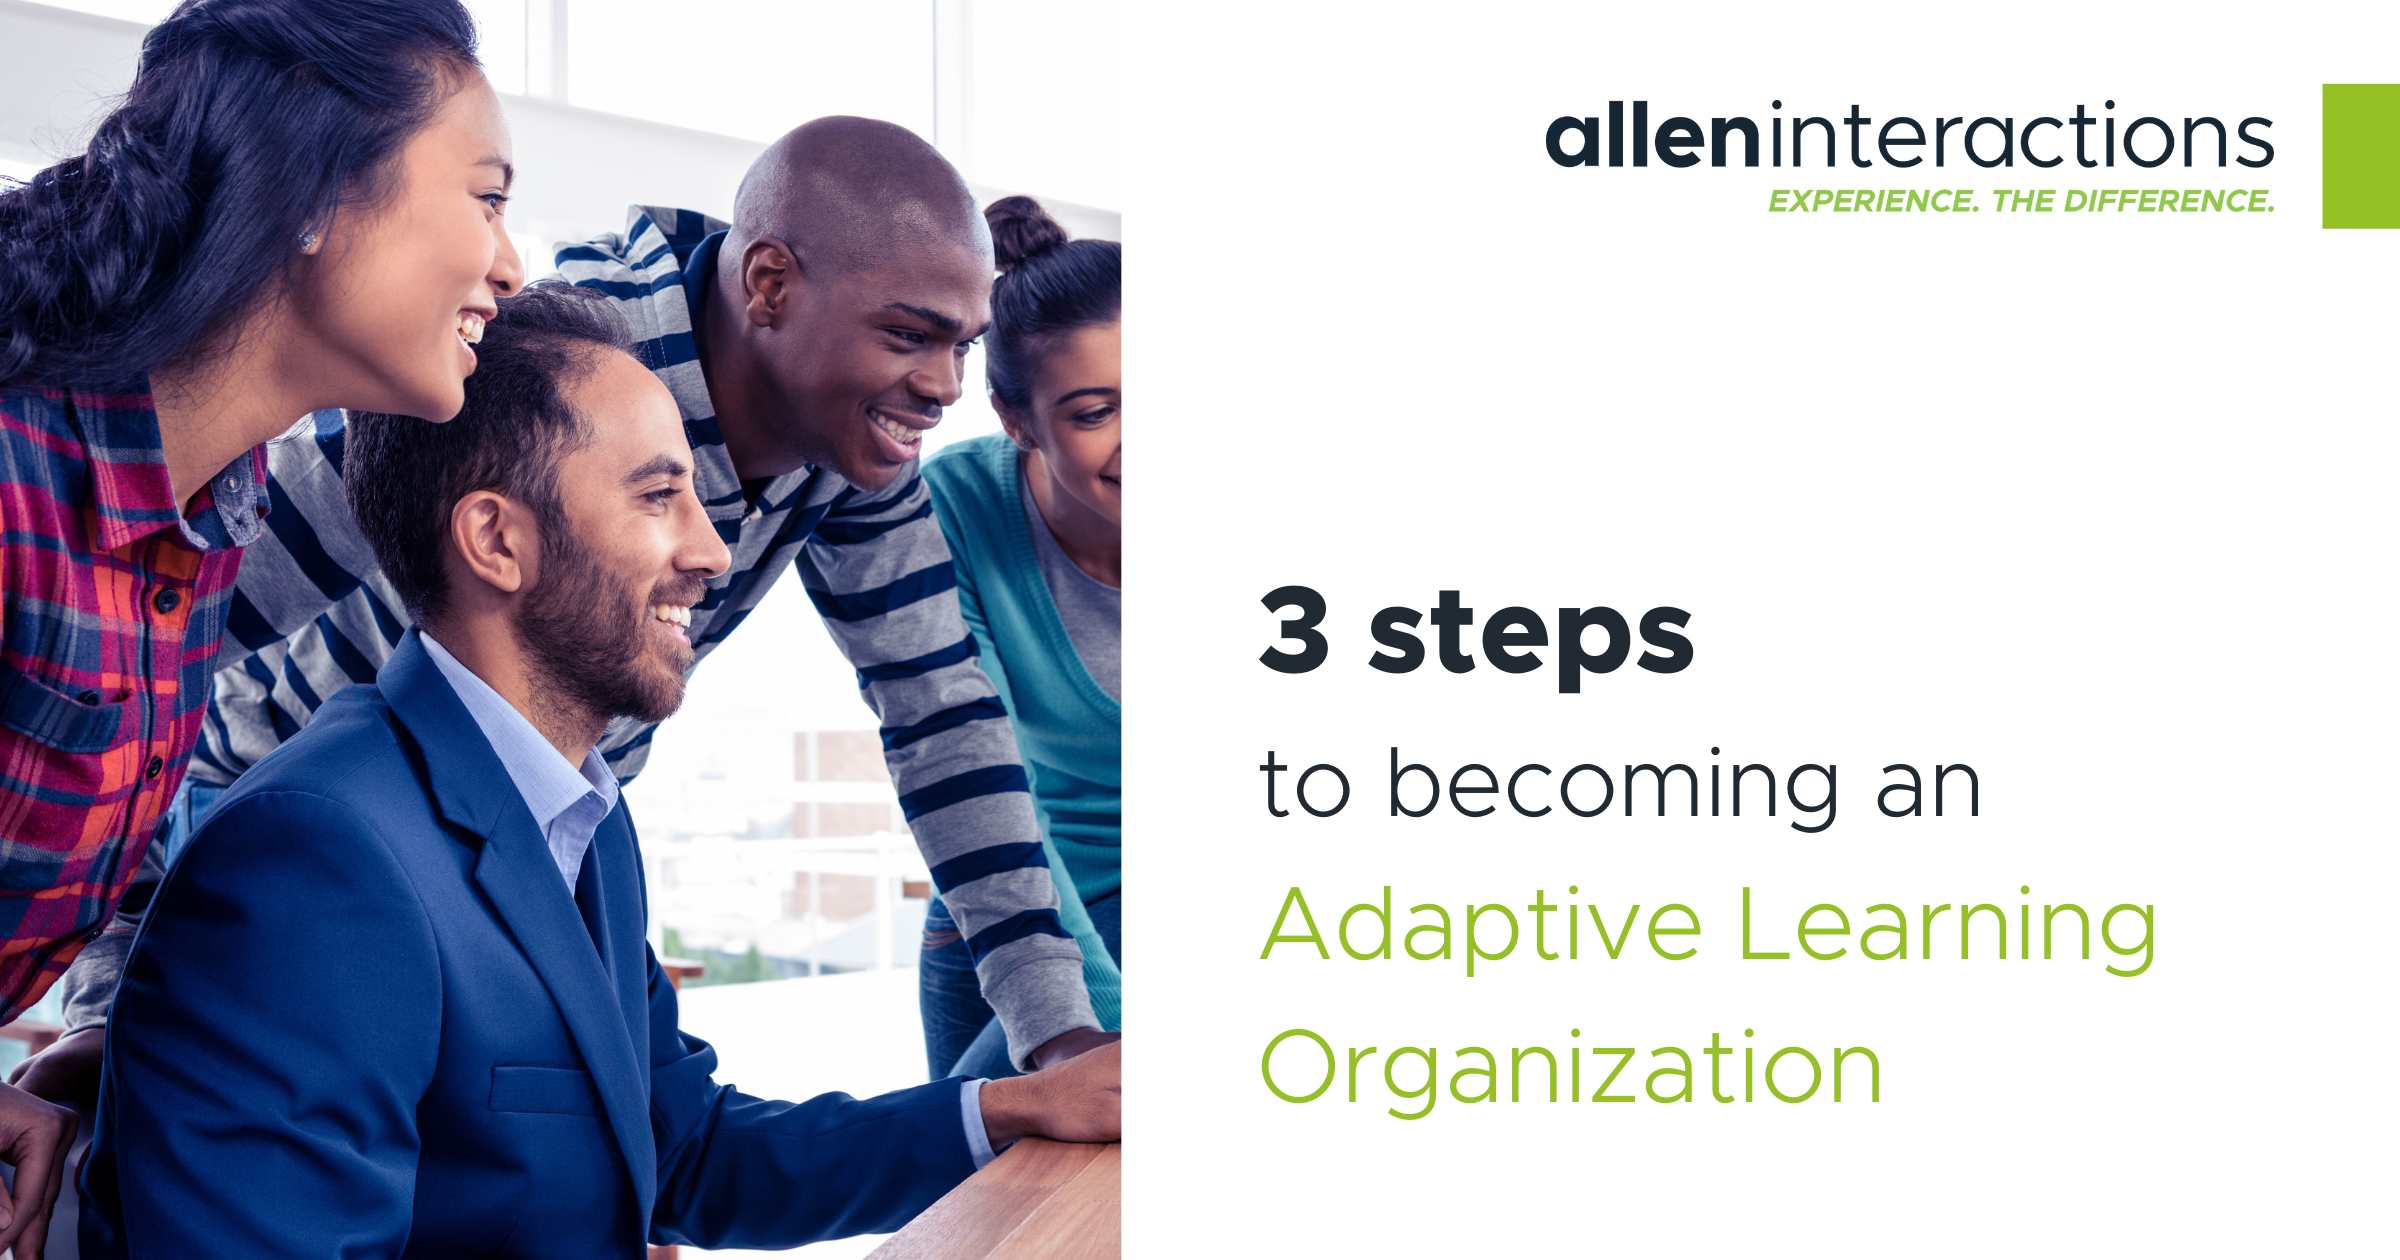 3 Steps to Becoming an Adaptive Learning Organization